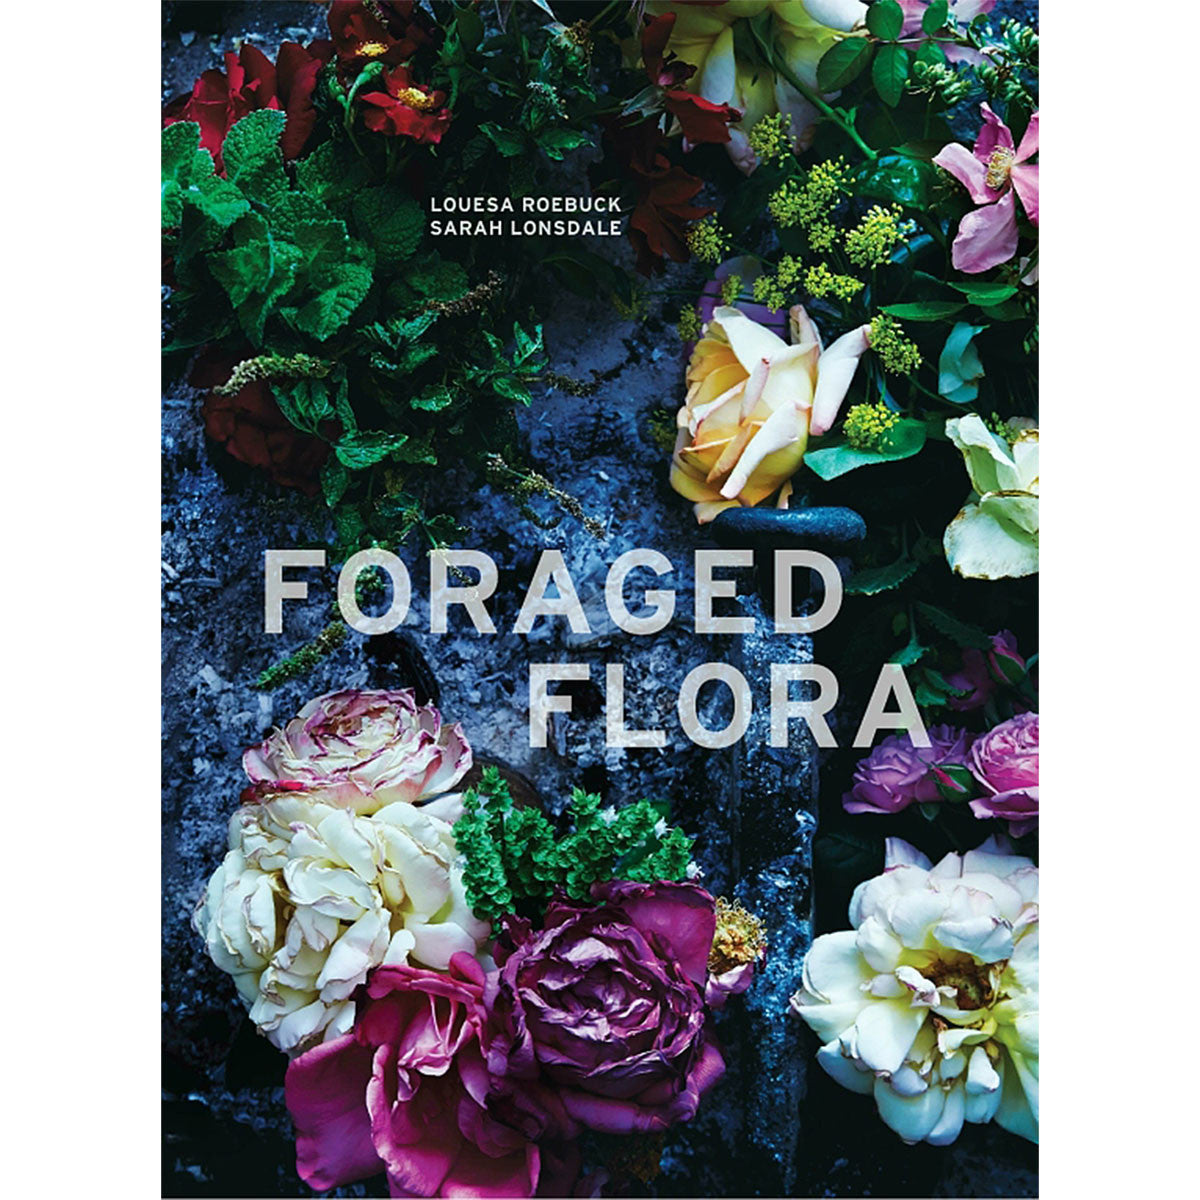 foraged flora by louesa roebuck + sarah lonsdale